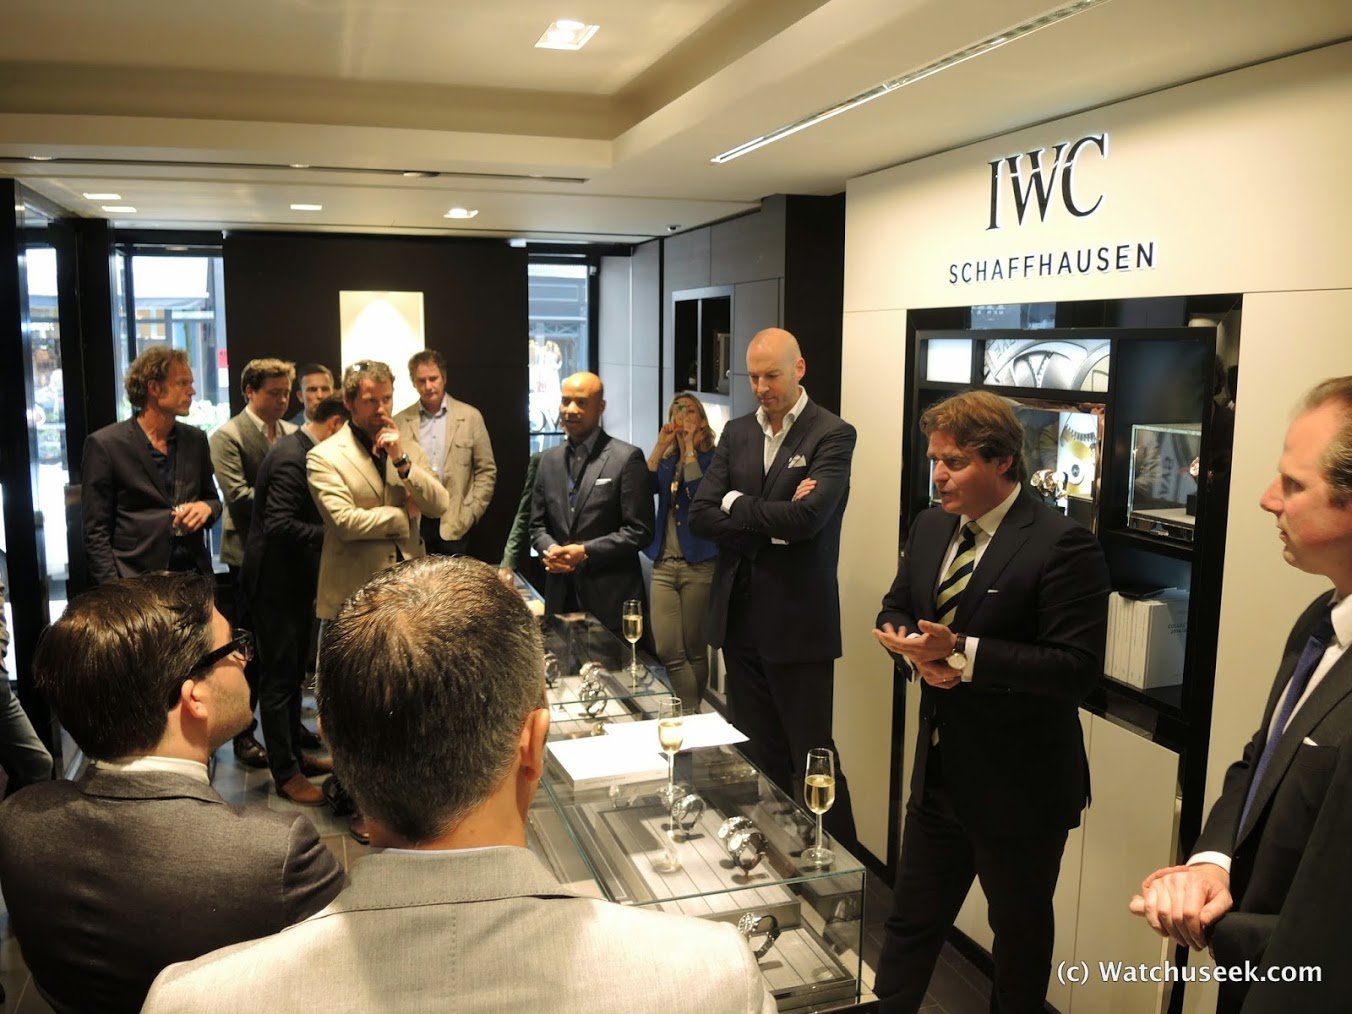 IWC SCHAFFHAUSEN Opens Its First (and the 70th world wide) Boutique in The Netherlands